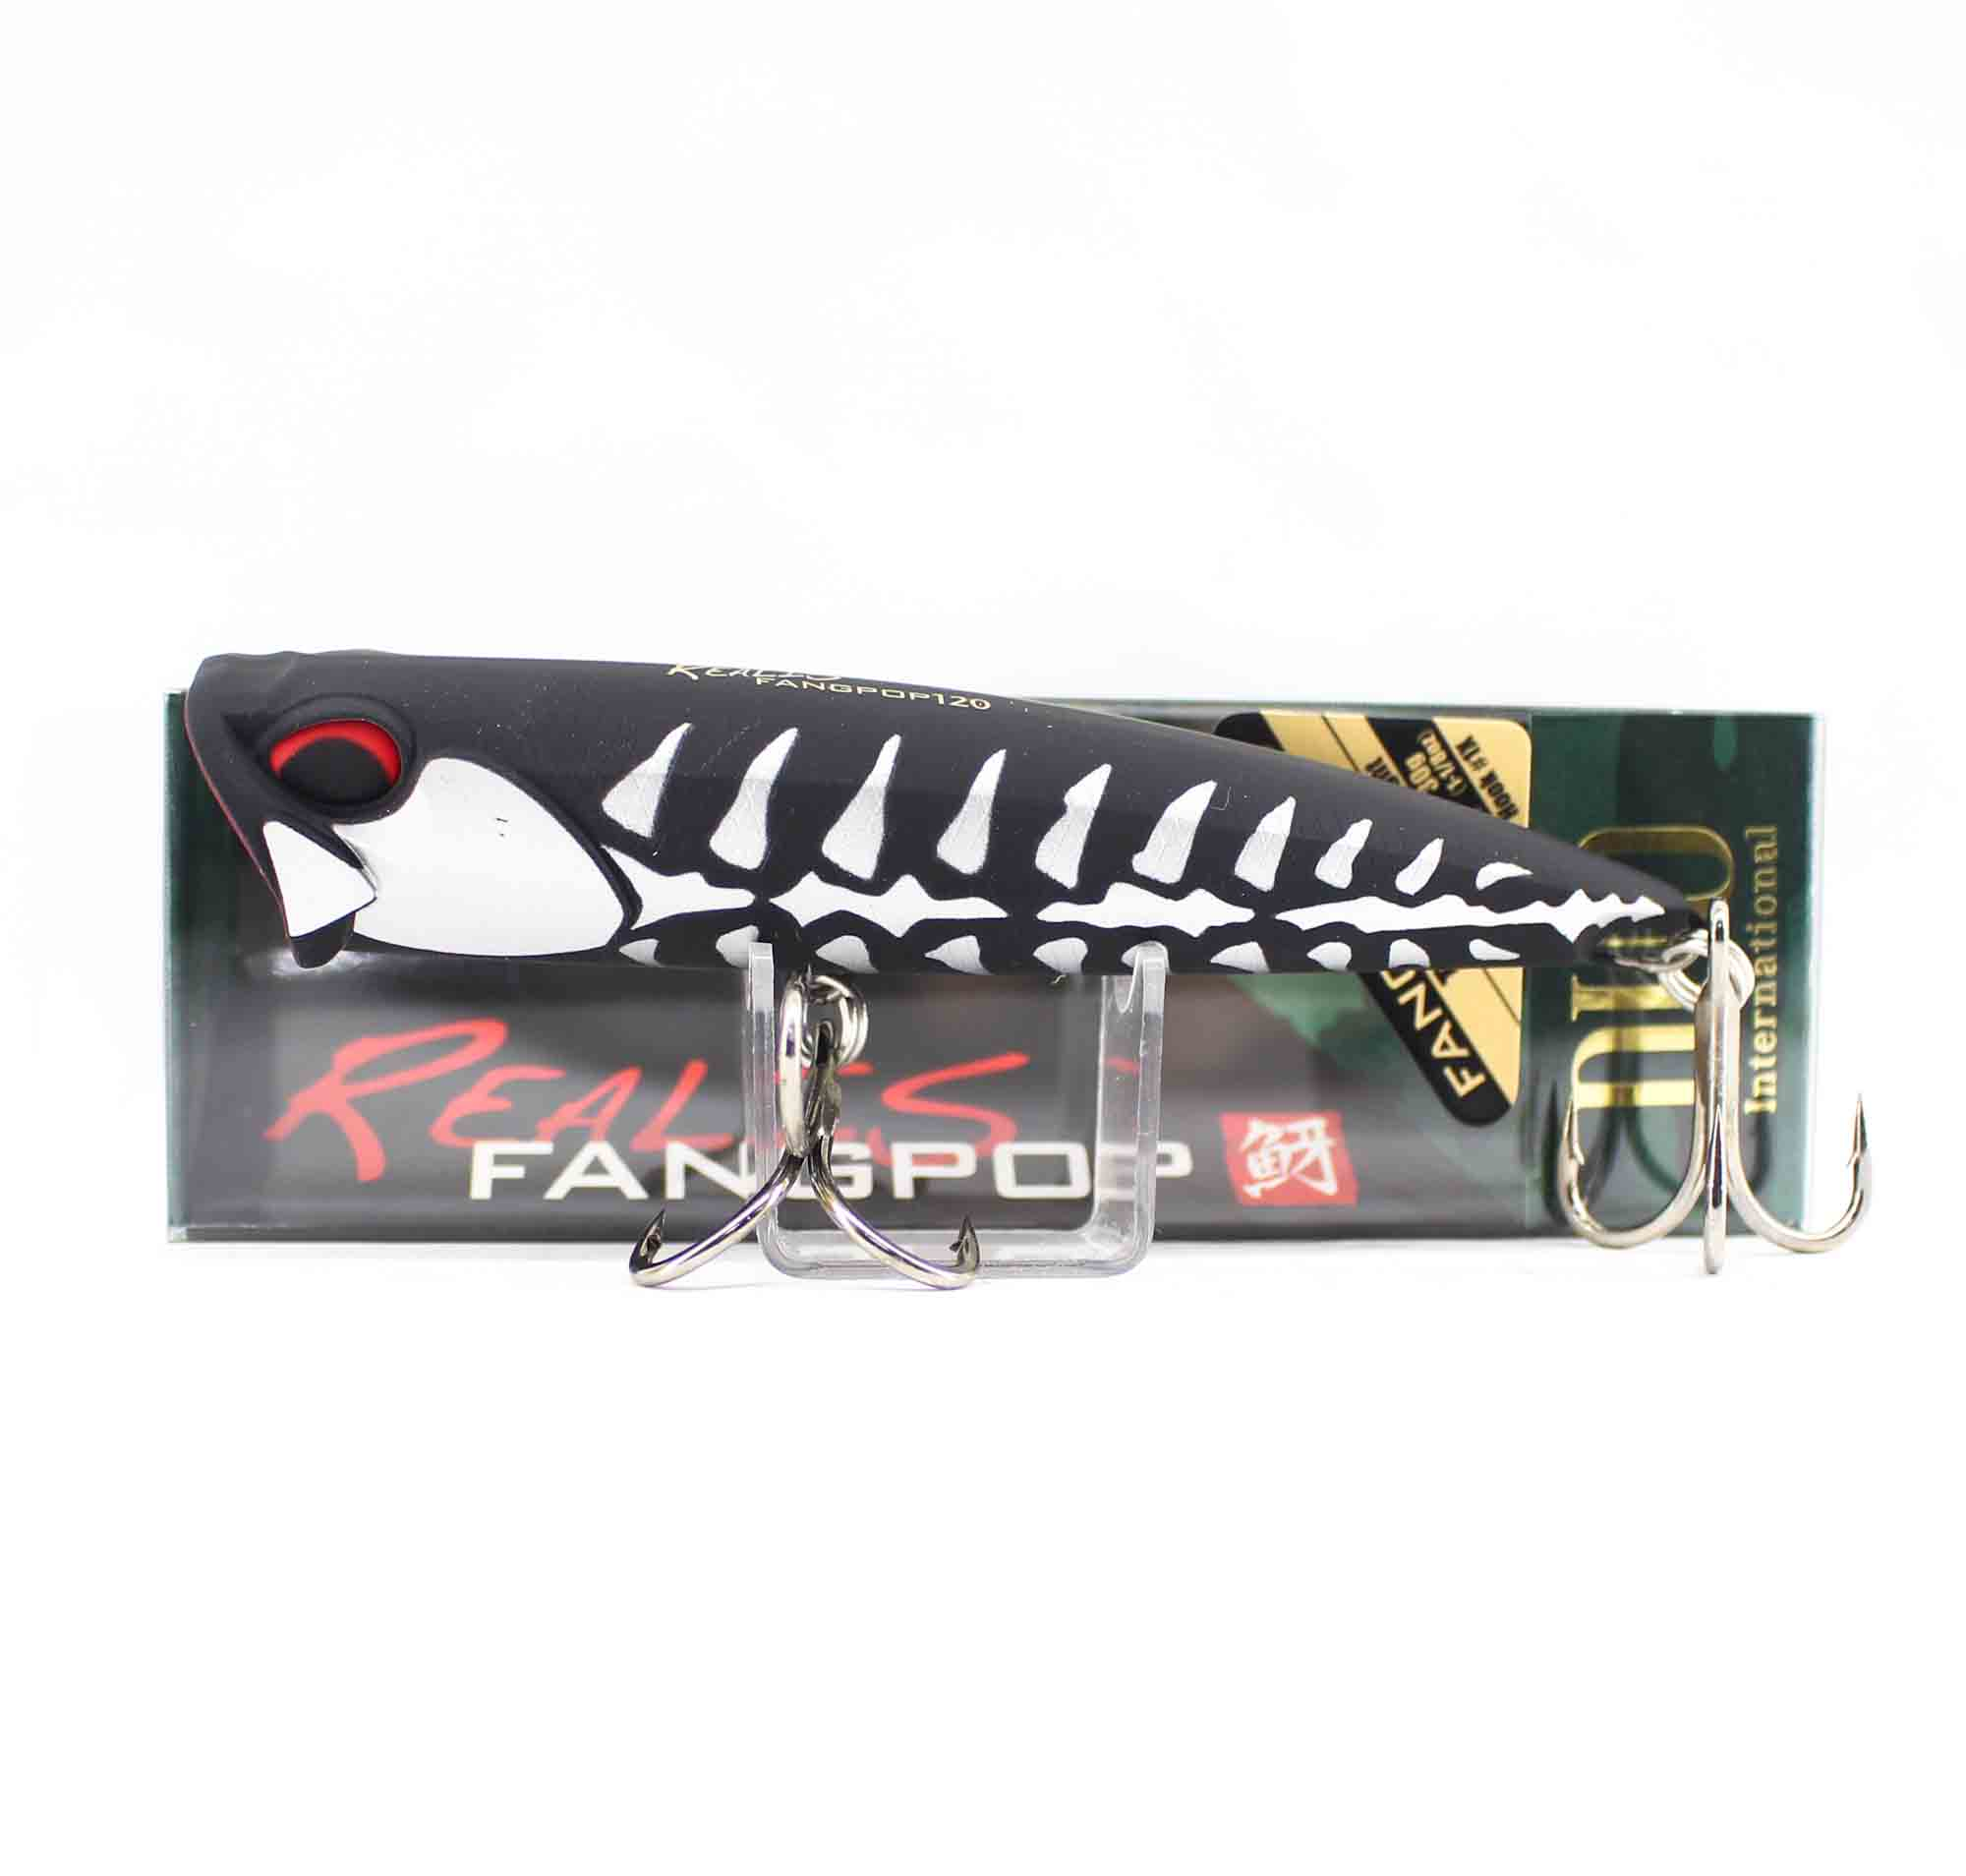 Duo Realis Fangpop 120 Floating Lure CCC3688 (4300)